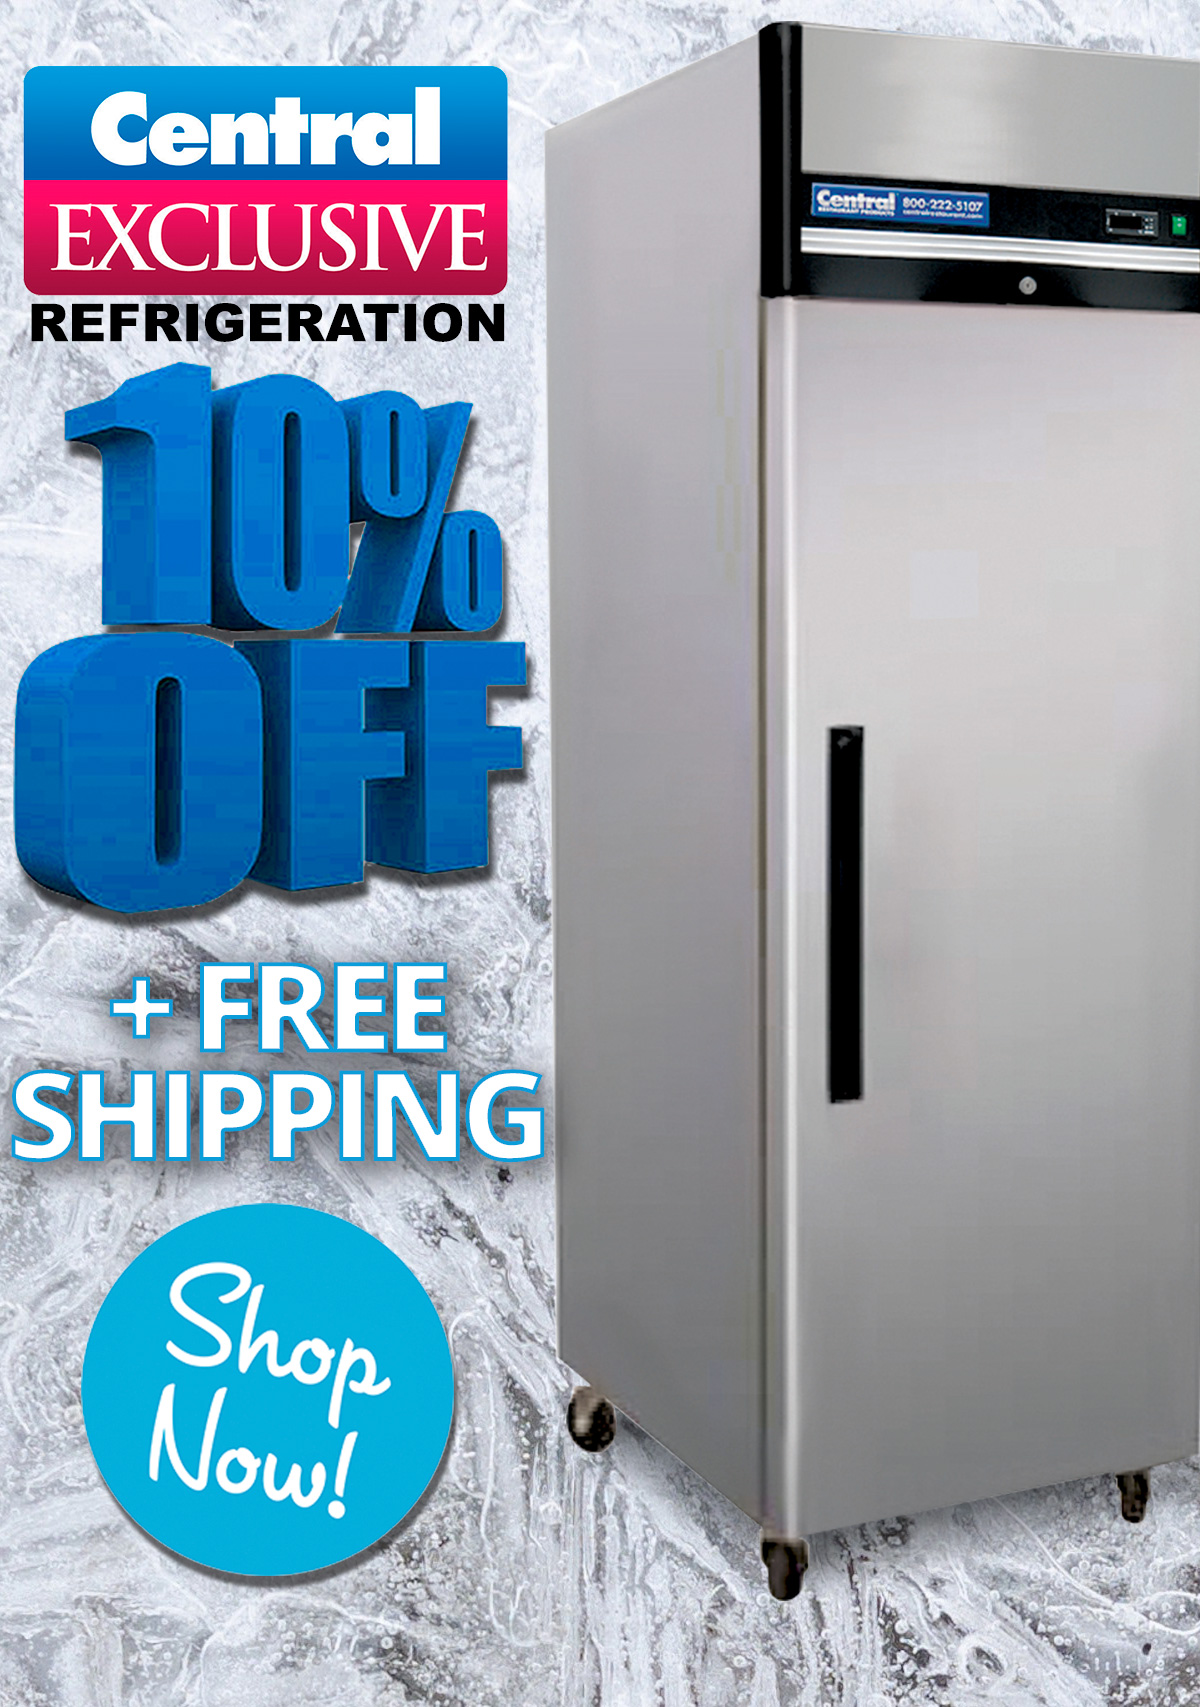 Central Exclusive Refrigeration - now 10% Off plus Free Shipping - Shop Today!